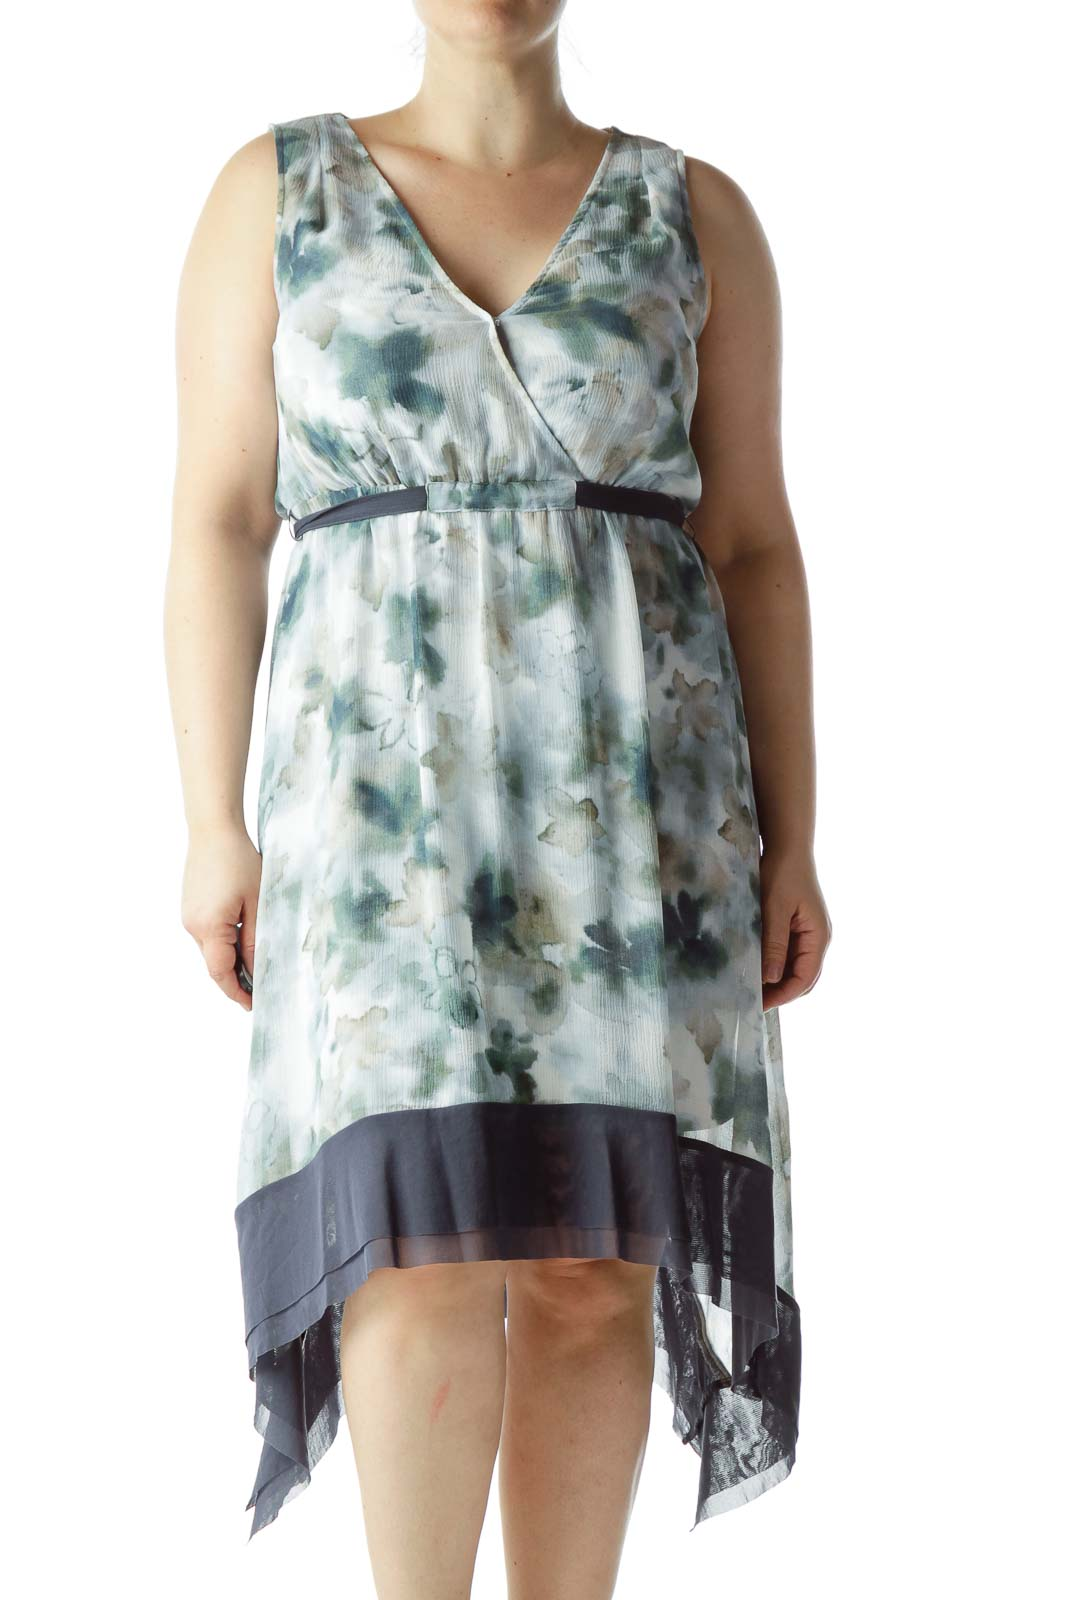 Blue and Green Paint Print Sheer Dress Front